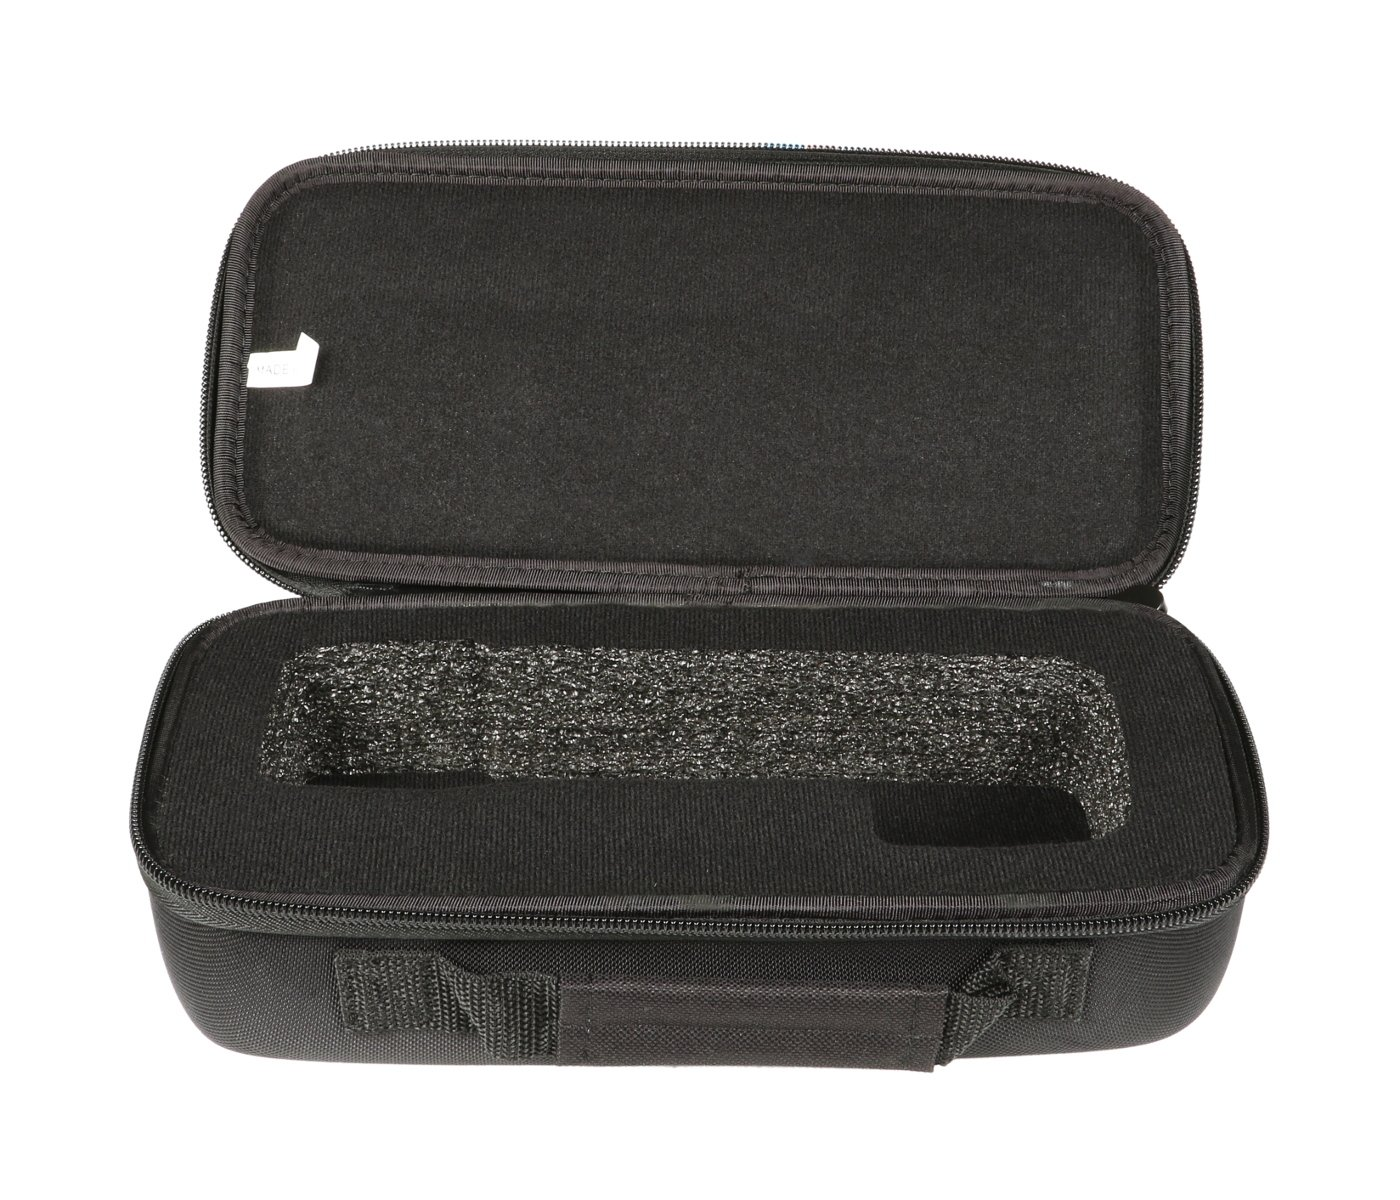 Carrying Case for RE20, RE27N/D, and RE320